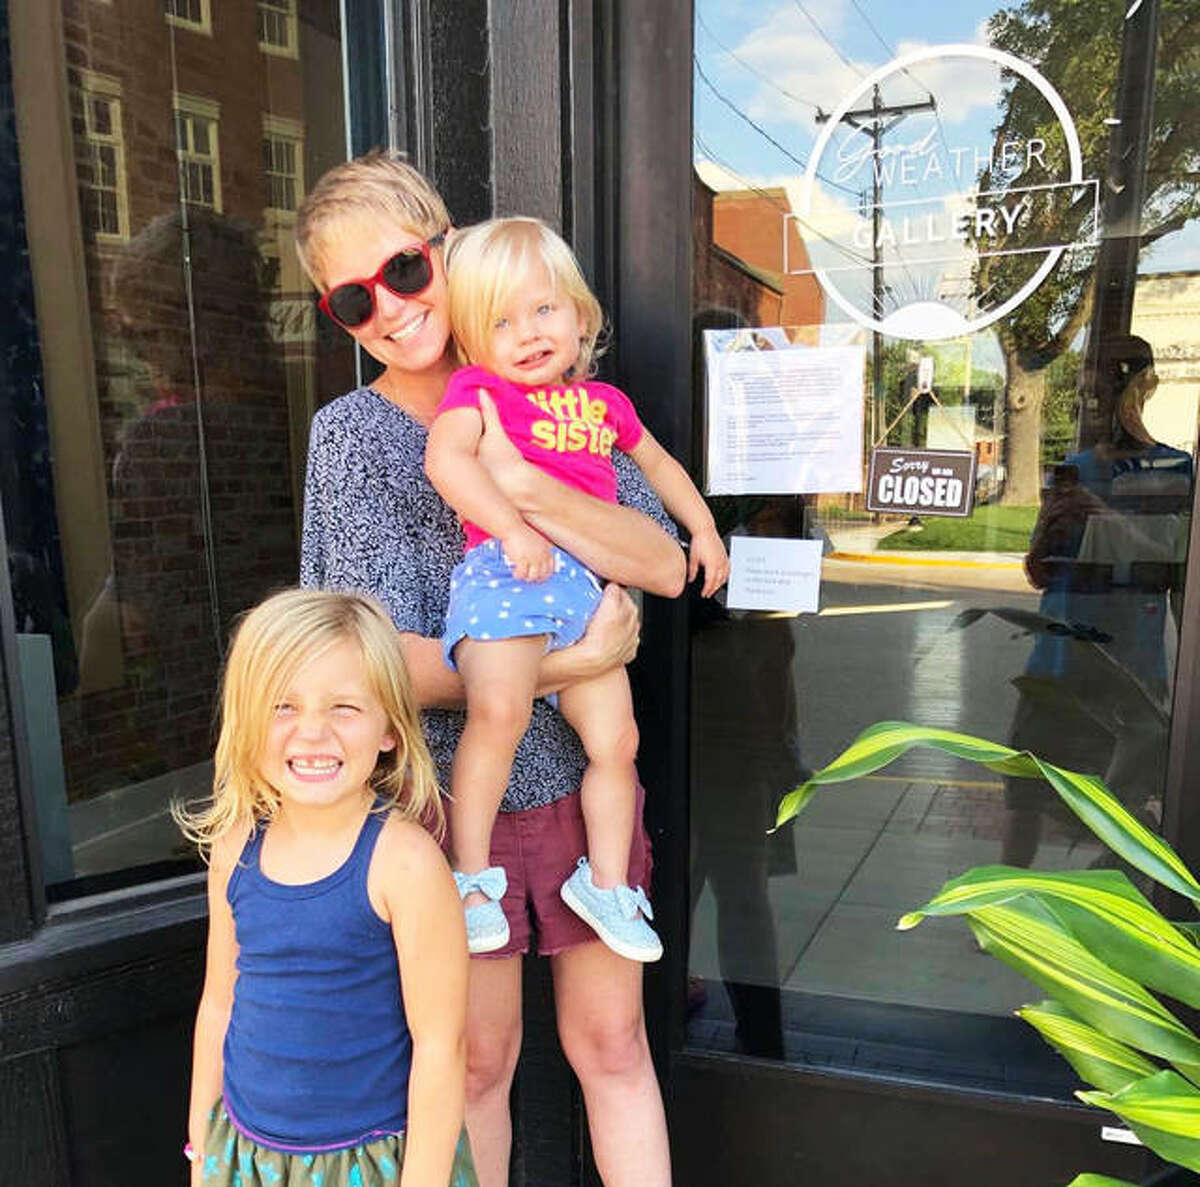 Good Weather Gallery owner and curator Brooke Peipert, of Alton, opened the independent gallery in Edwardsville one year ago. She stands with her daughters Juniper, 1, right, who was only a few months old when the gallery opened, and Hazel, 5, both of whom are always at the gallery and inspiration for Peipert.